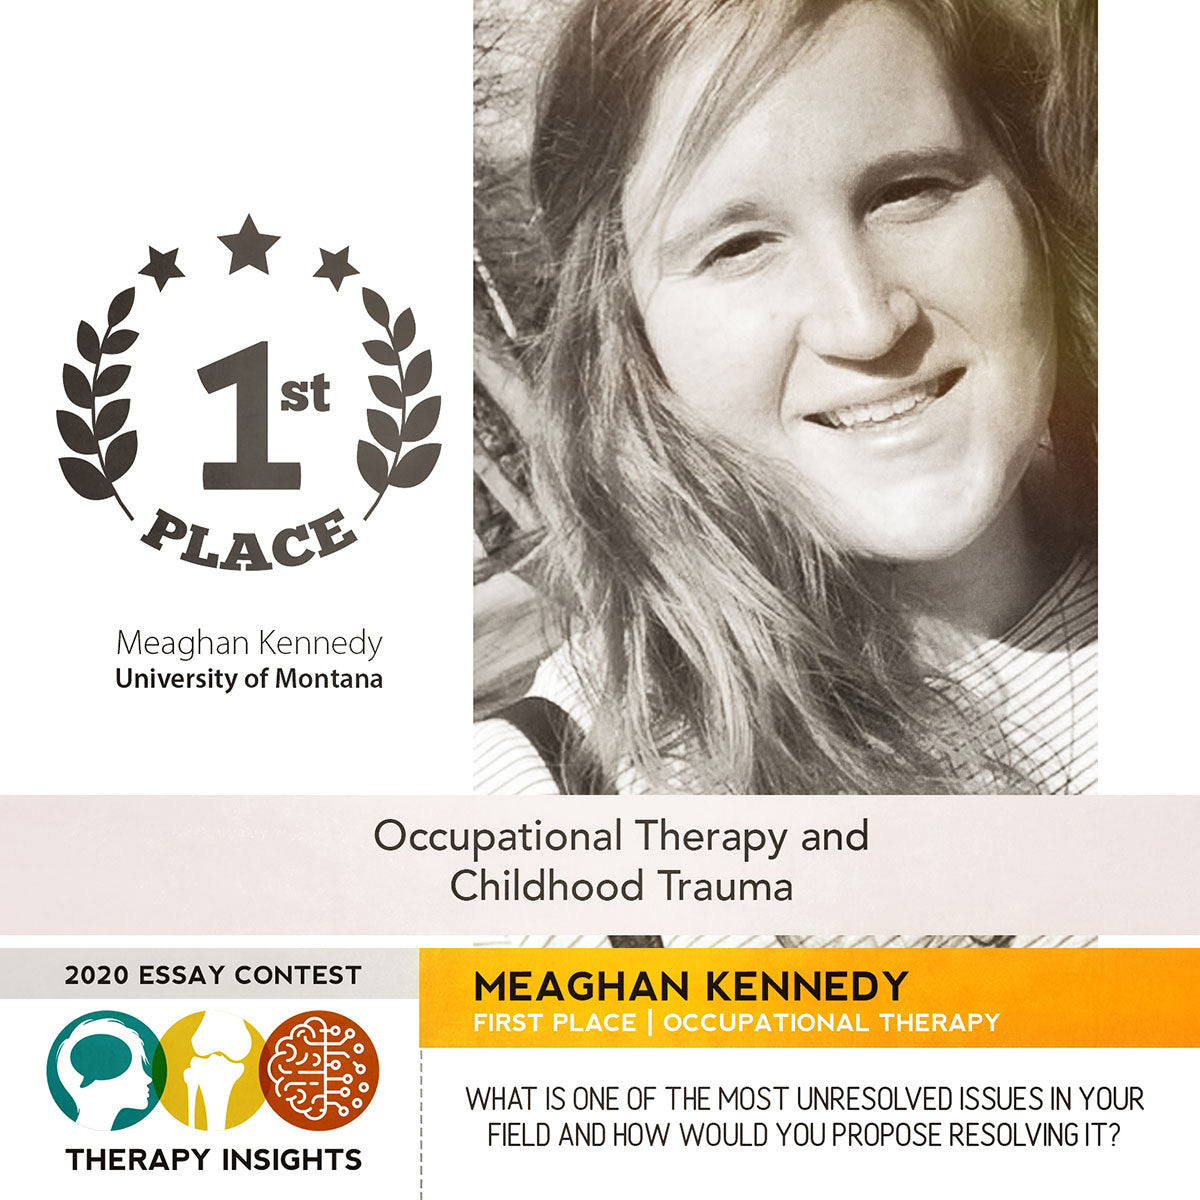 Occupational Therapy and Childhood Trauma by Meaghan Kennedy